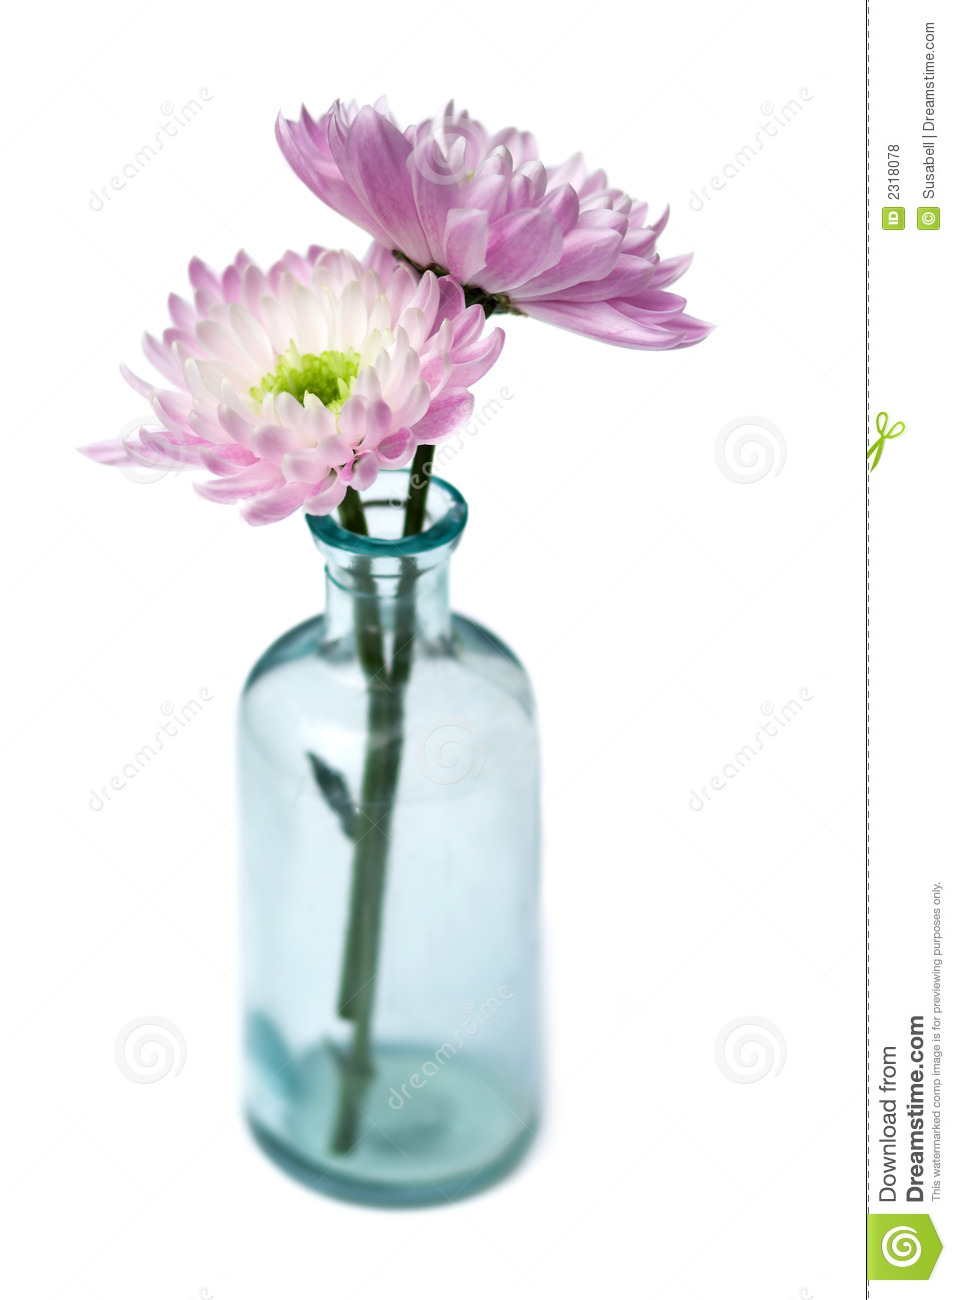 262 & Two Flowers in Glass Vase stock photo. Image of floral - 2318078